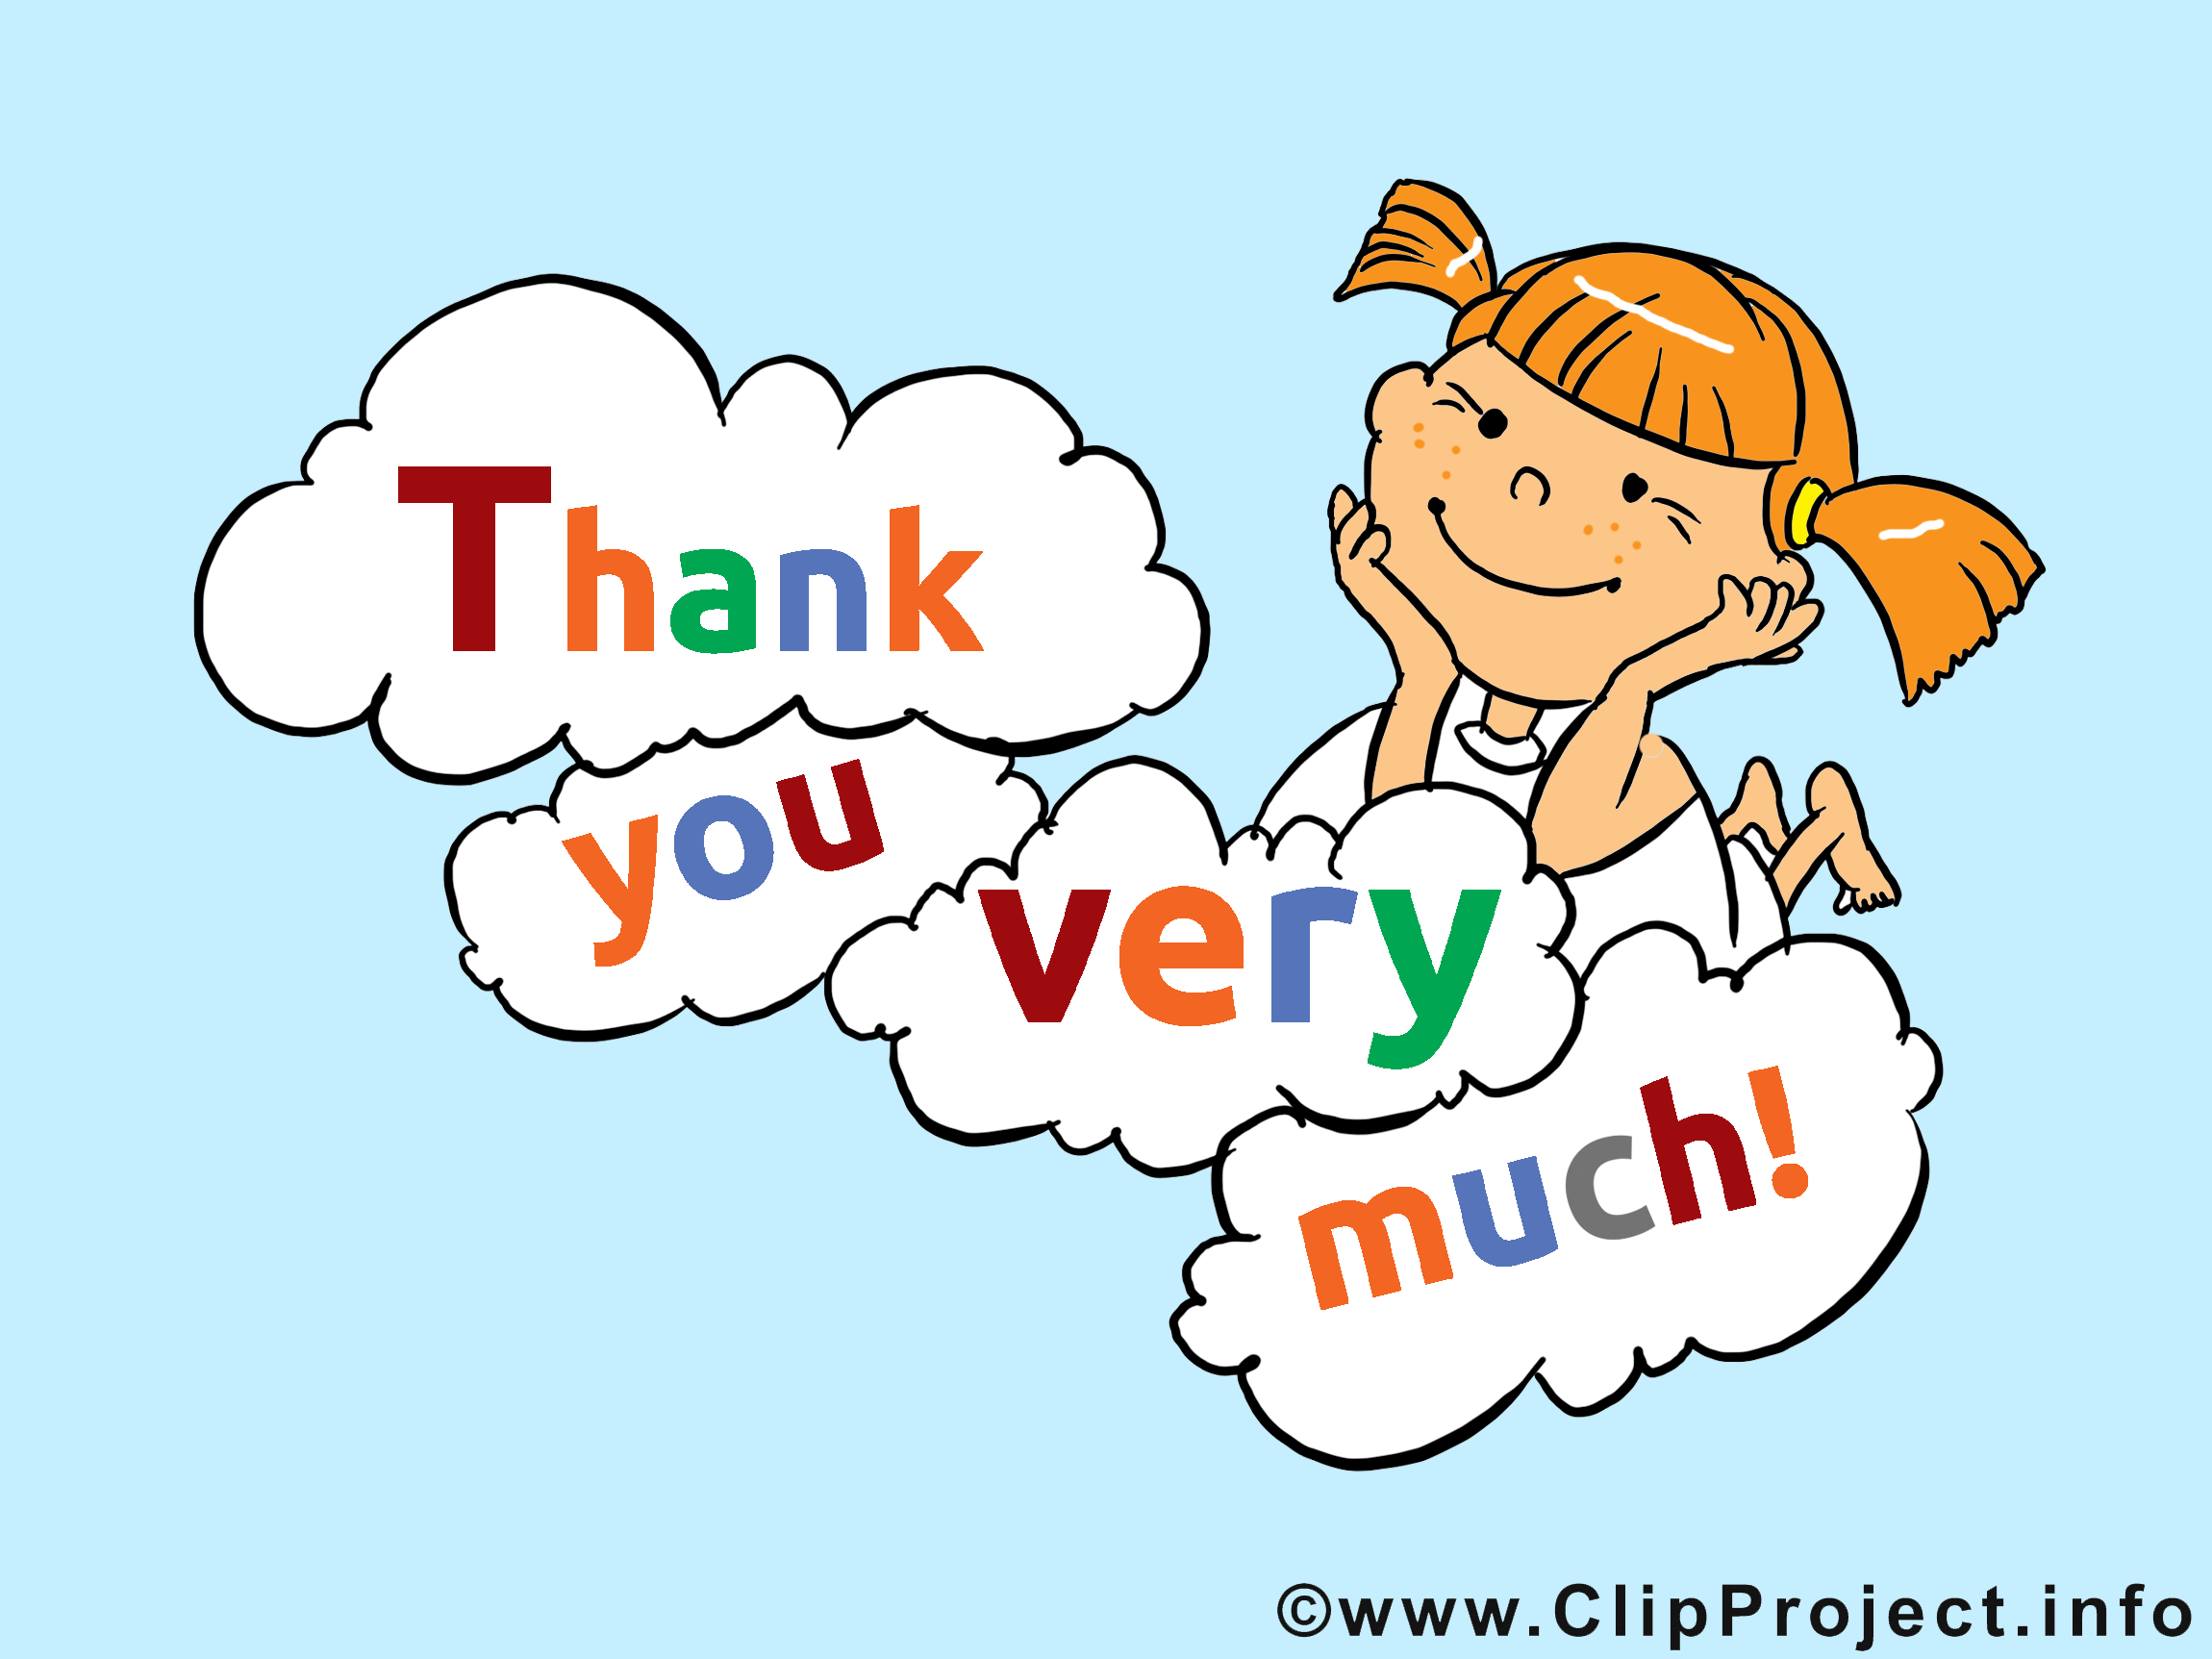 Triangle clipart thank you You cliparts Much Very Clipart